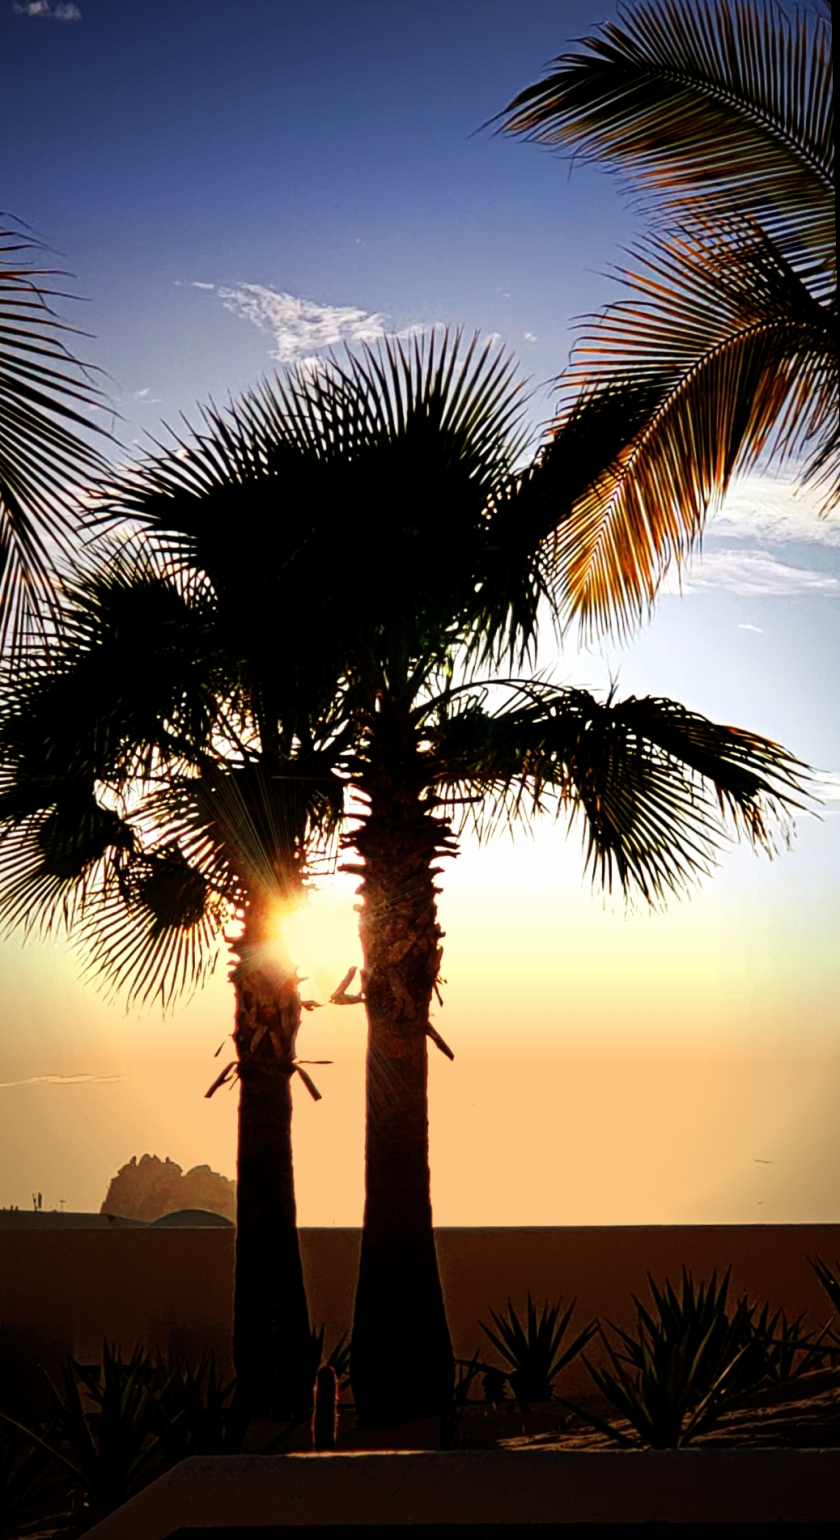 00-palmtrees-cabo-backlit-20180401_184503_A